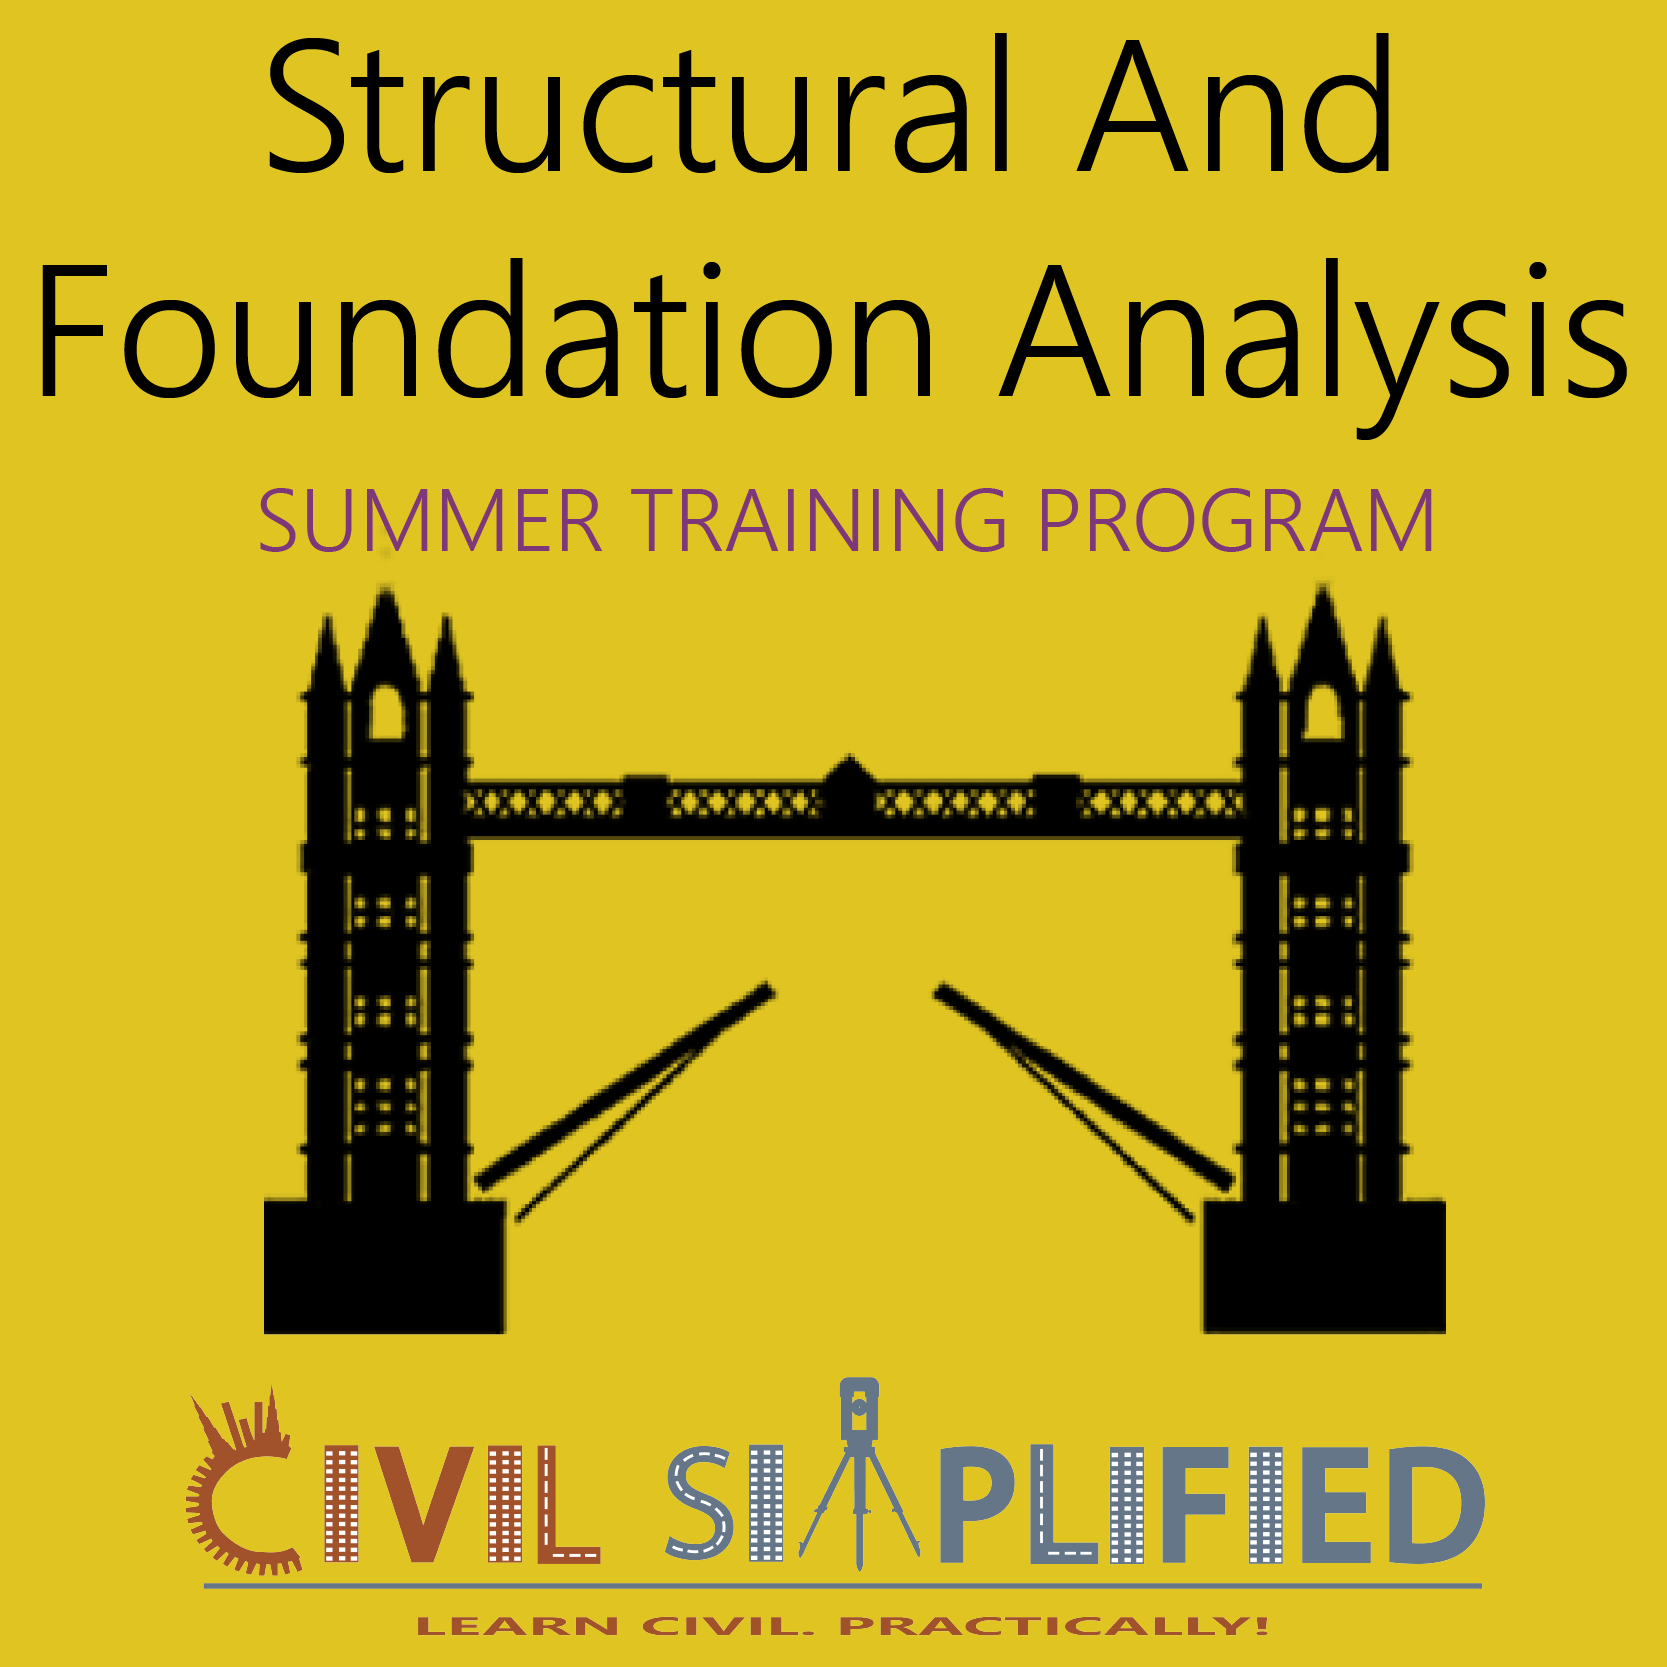 Summer Training Program in Civil Engineering - Structural and Foundation Analysis  at Skyfi Labs Center, Sujatha degree college, Abids Workshop